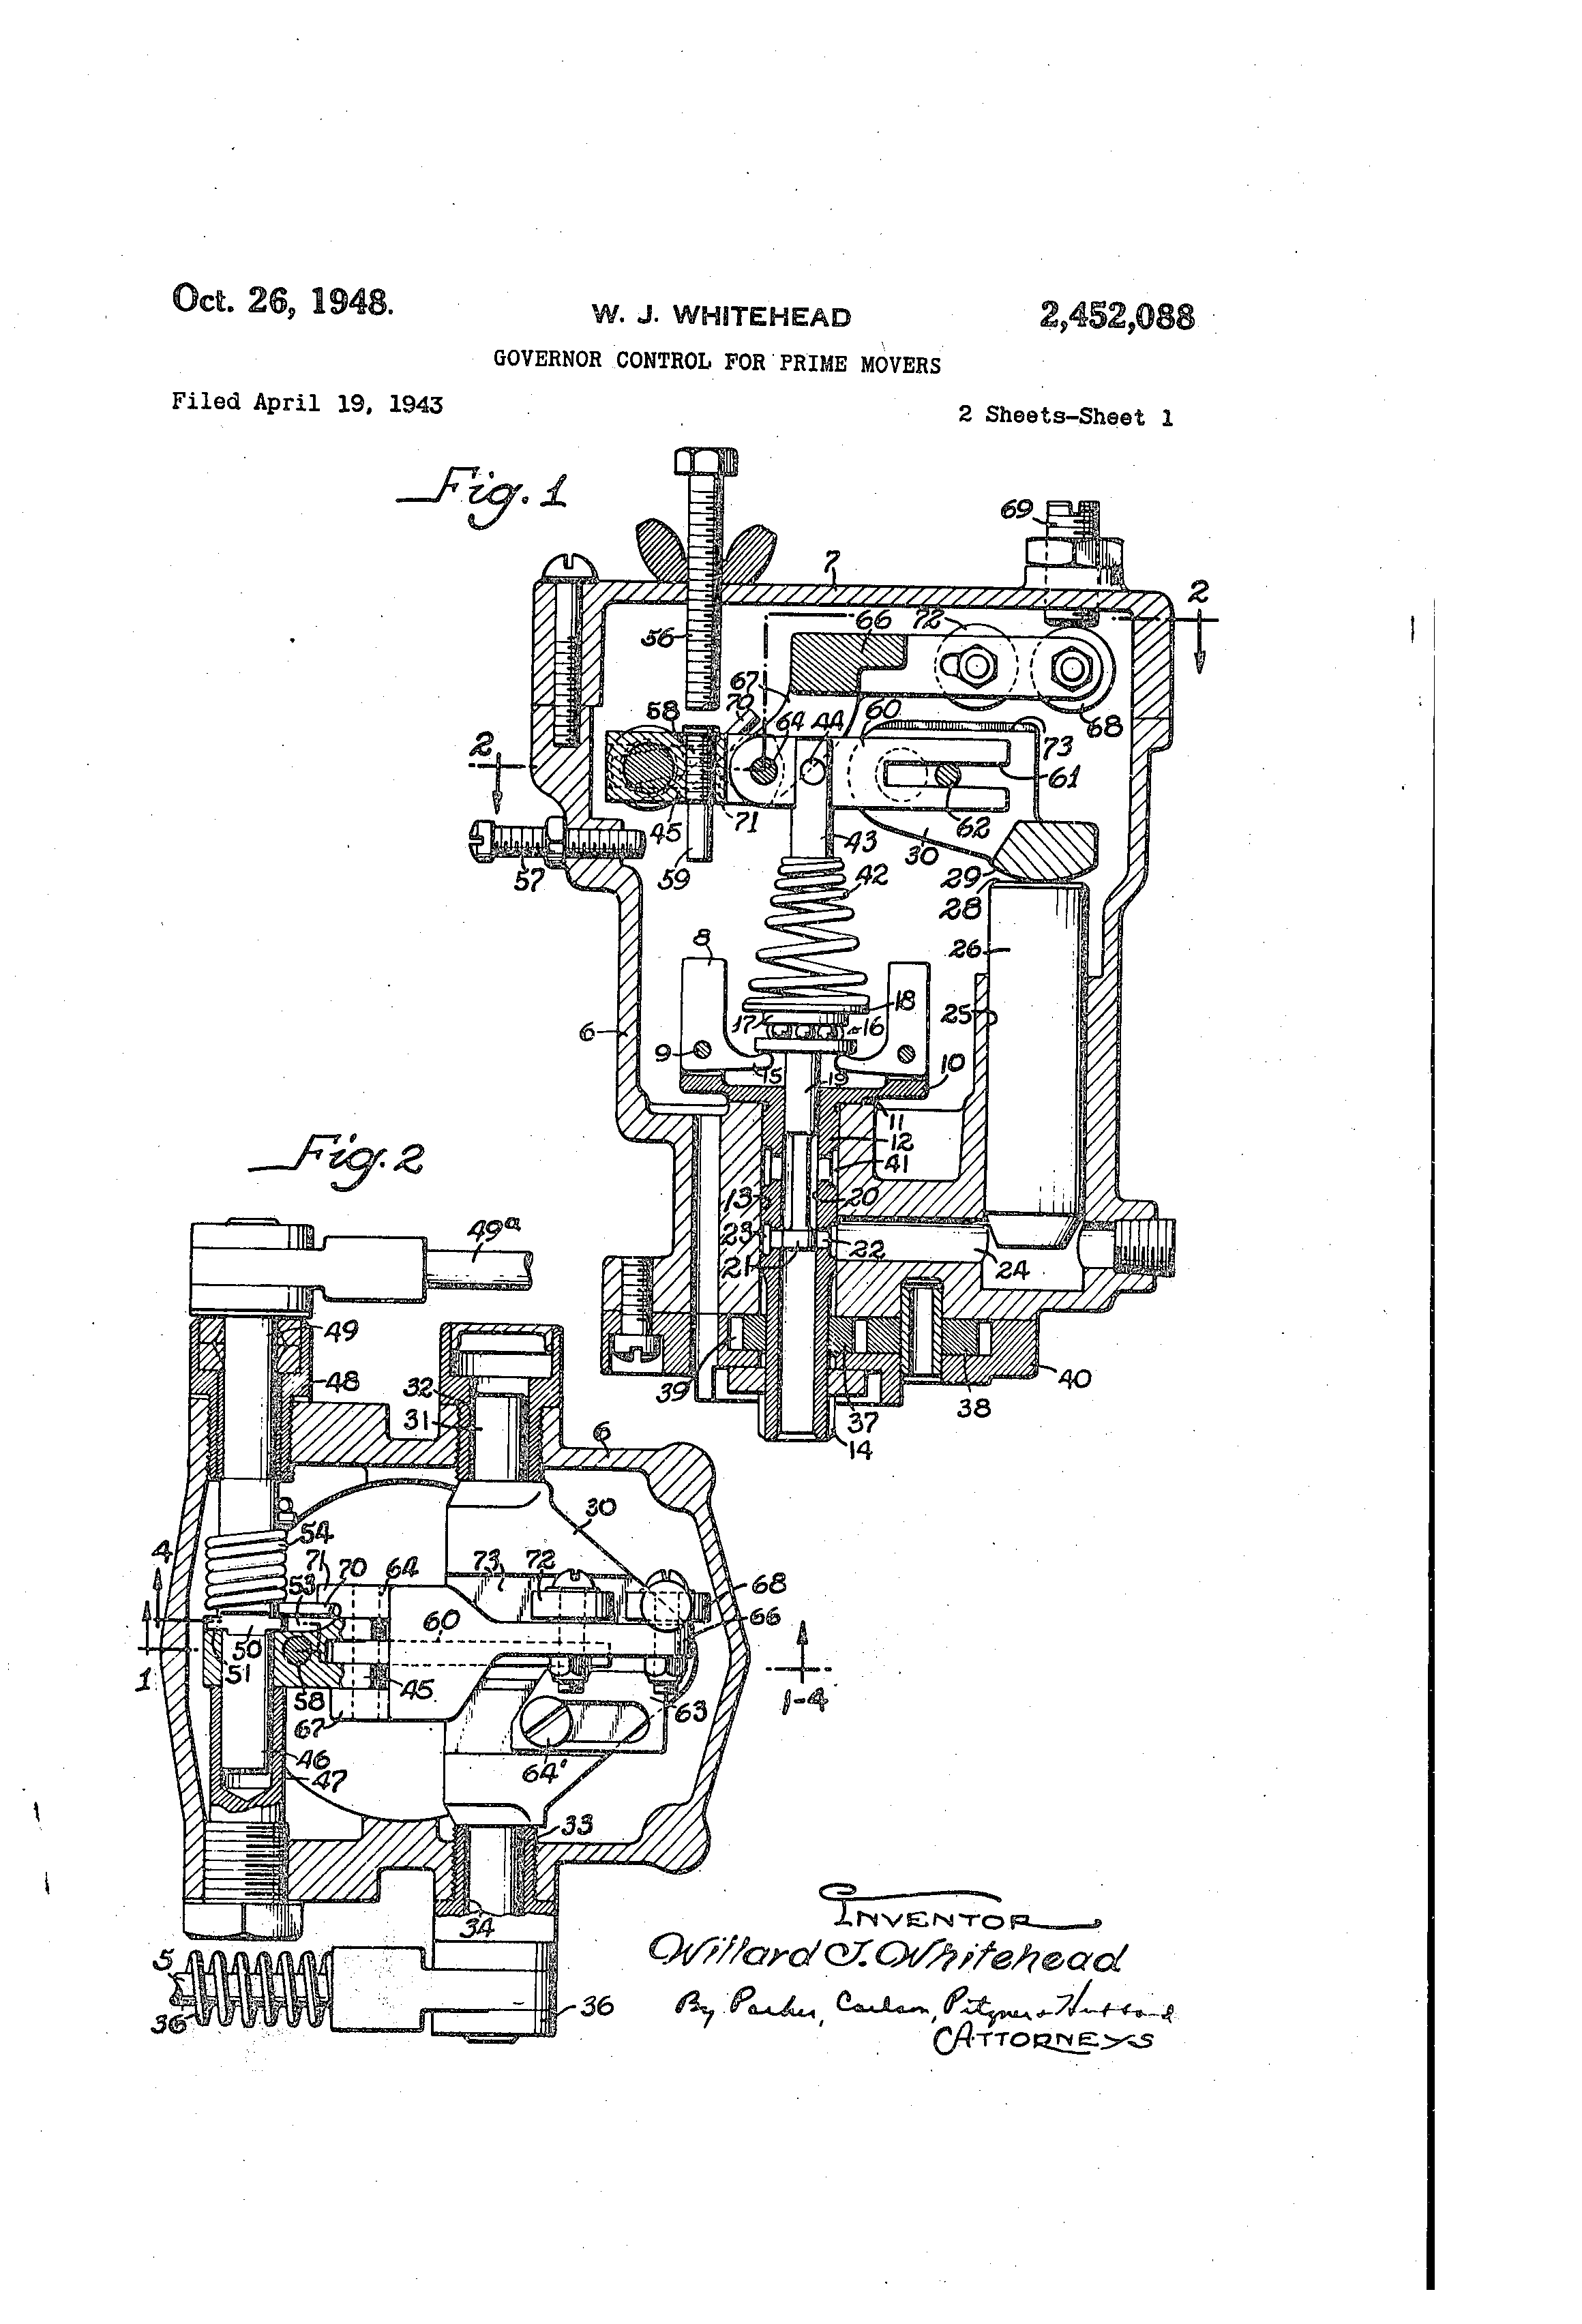 Woodward Governor Company's patent for the type SG